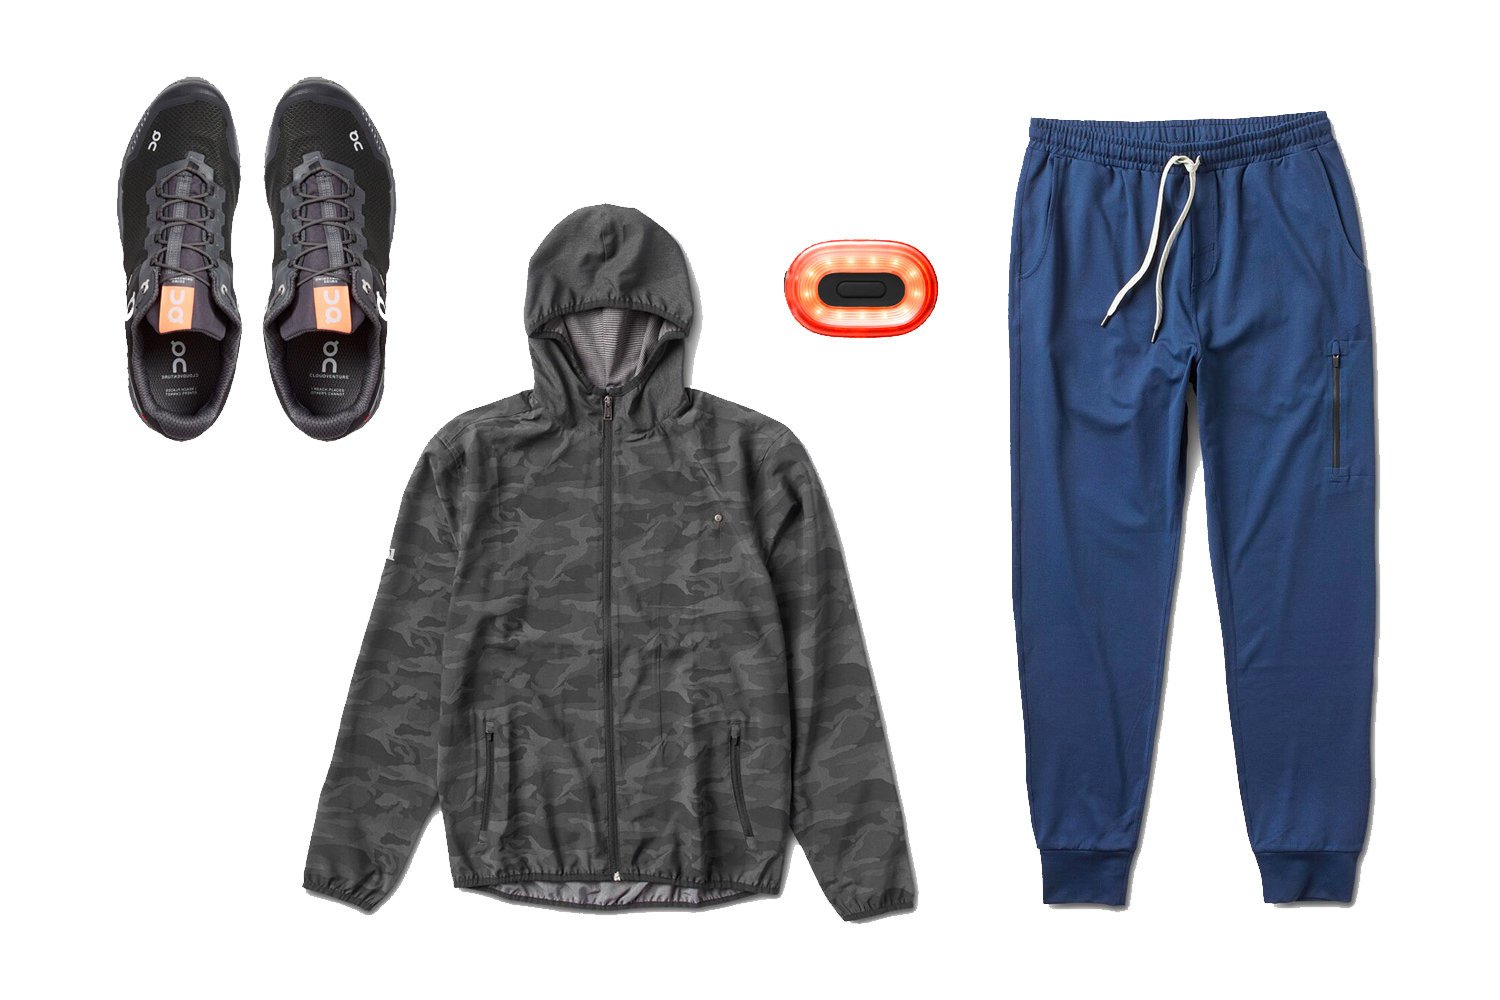 Workout gear for the all-season outdoor athlete